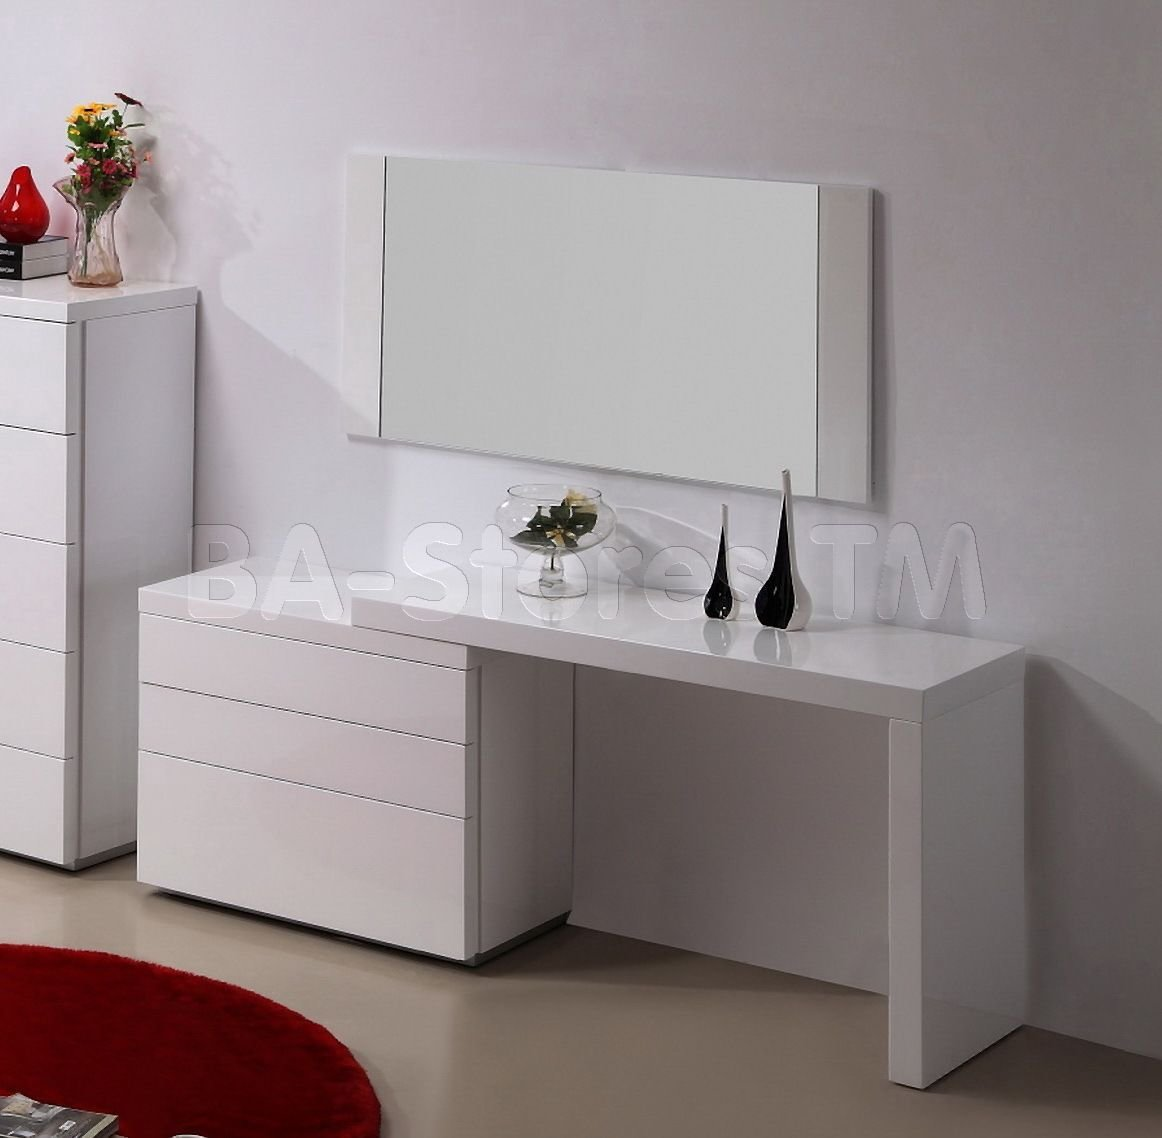 Best Athens 3 Pc Vanity Set In White Vanities And Mirrors Athens Vanity Wh 8 For My Bedroom With Pictures